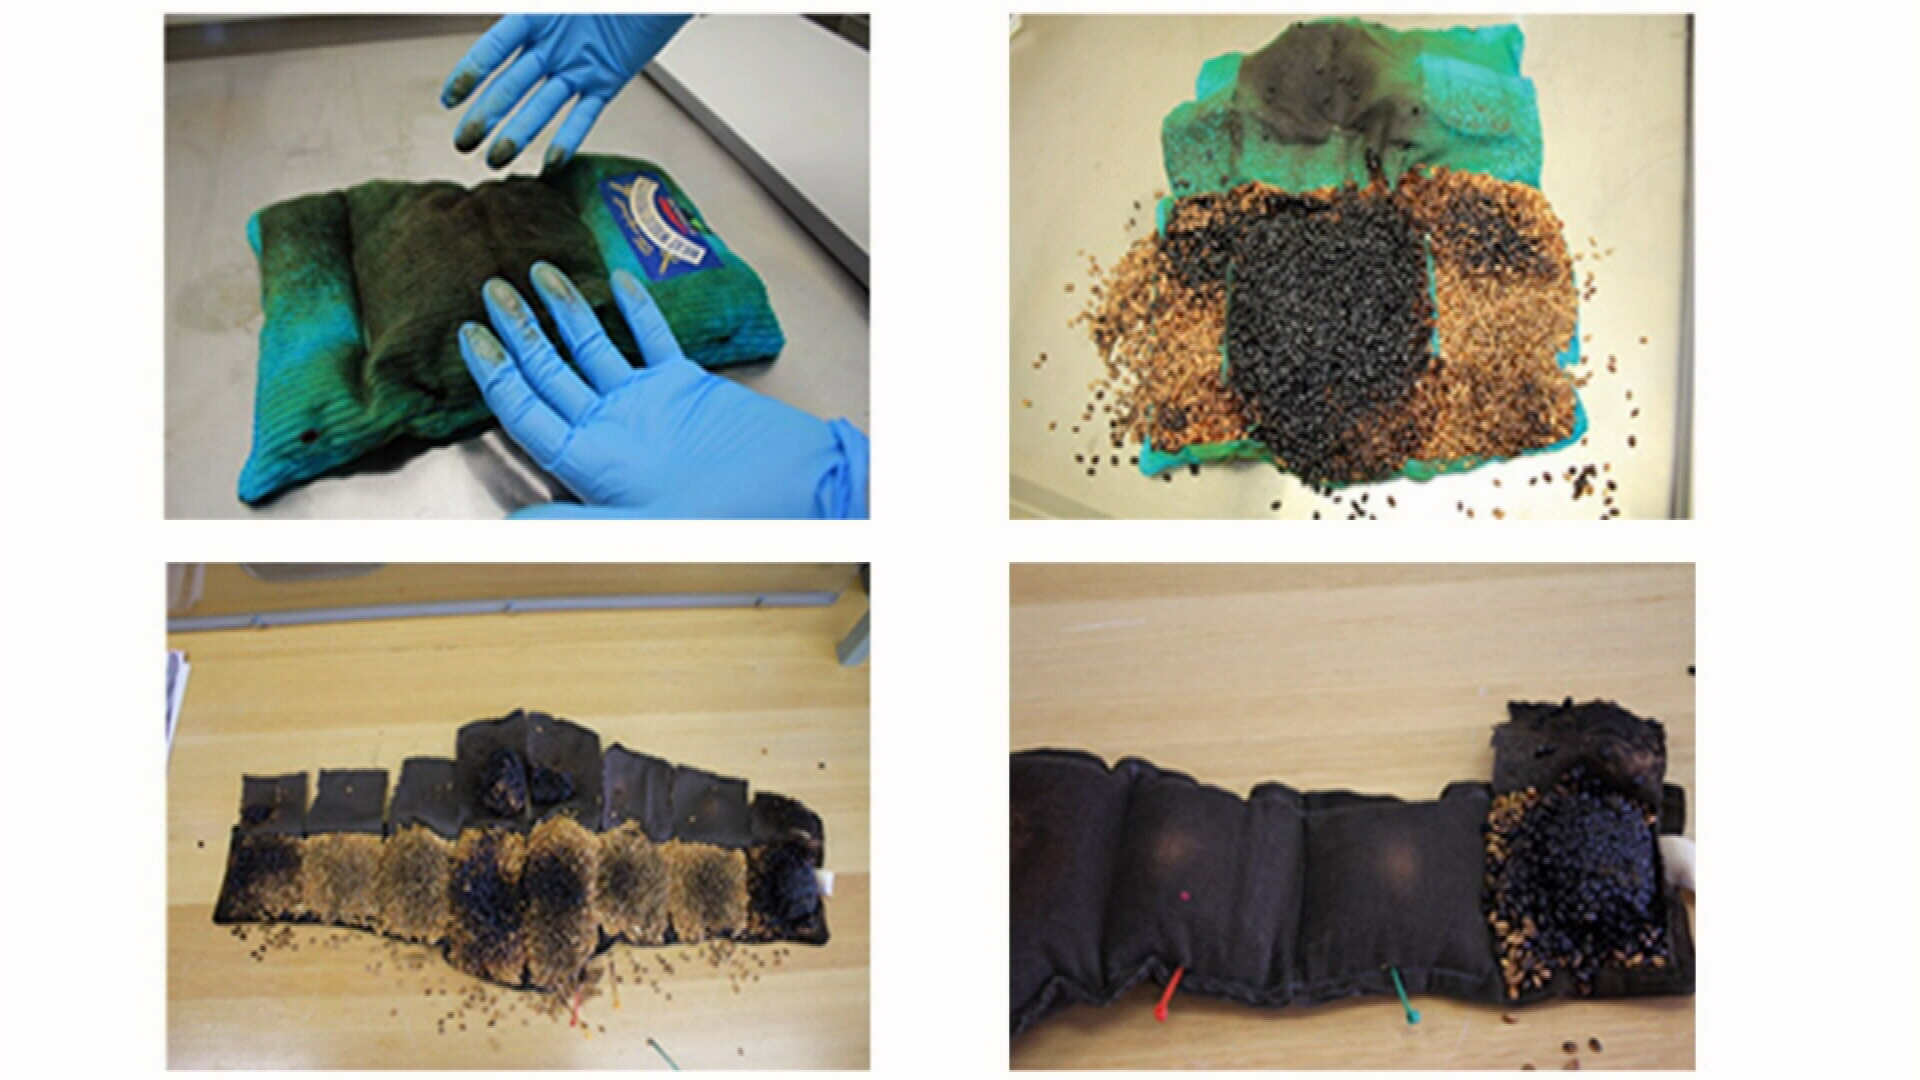 Heatpacks shown burnt and black after overheating